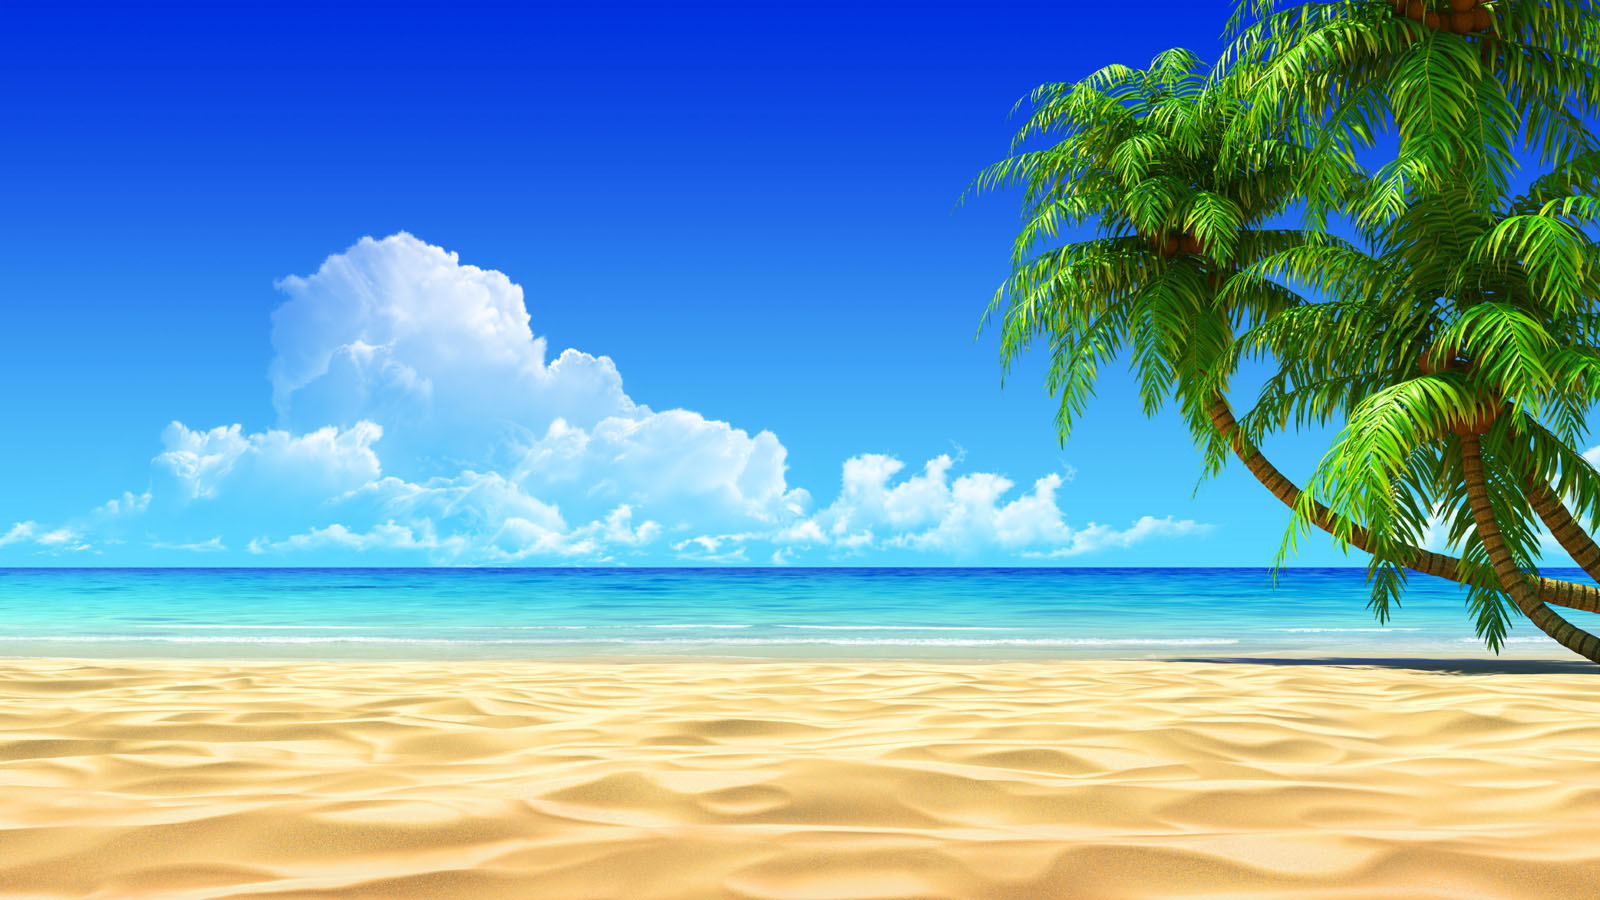 Wallpaper Pictures beach wallpaper